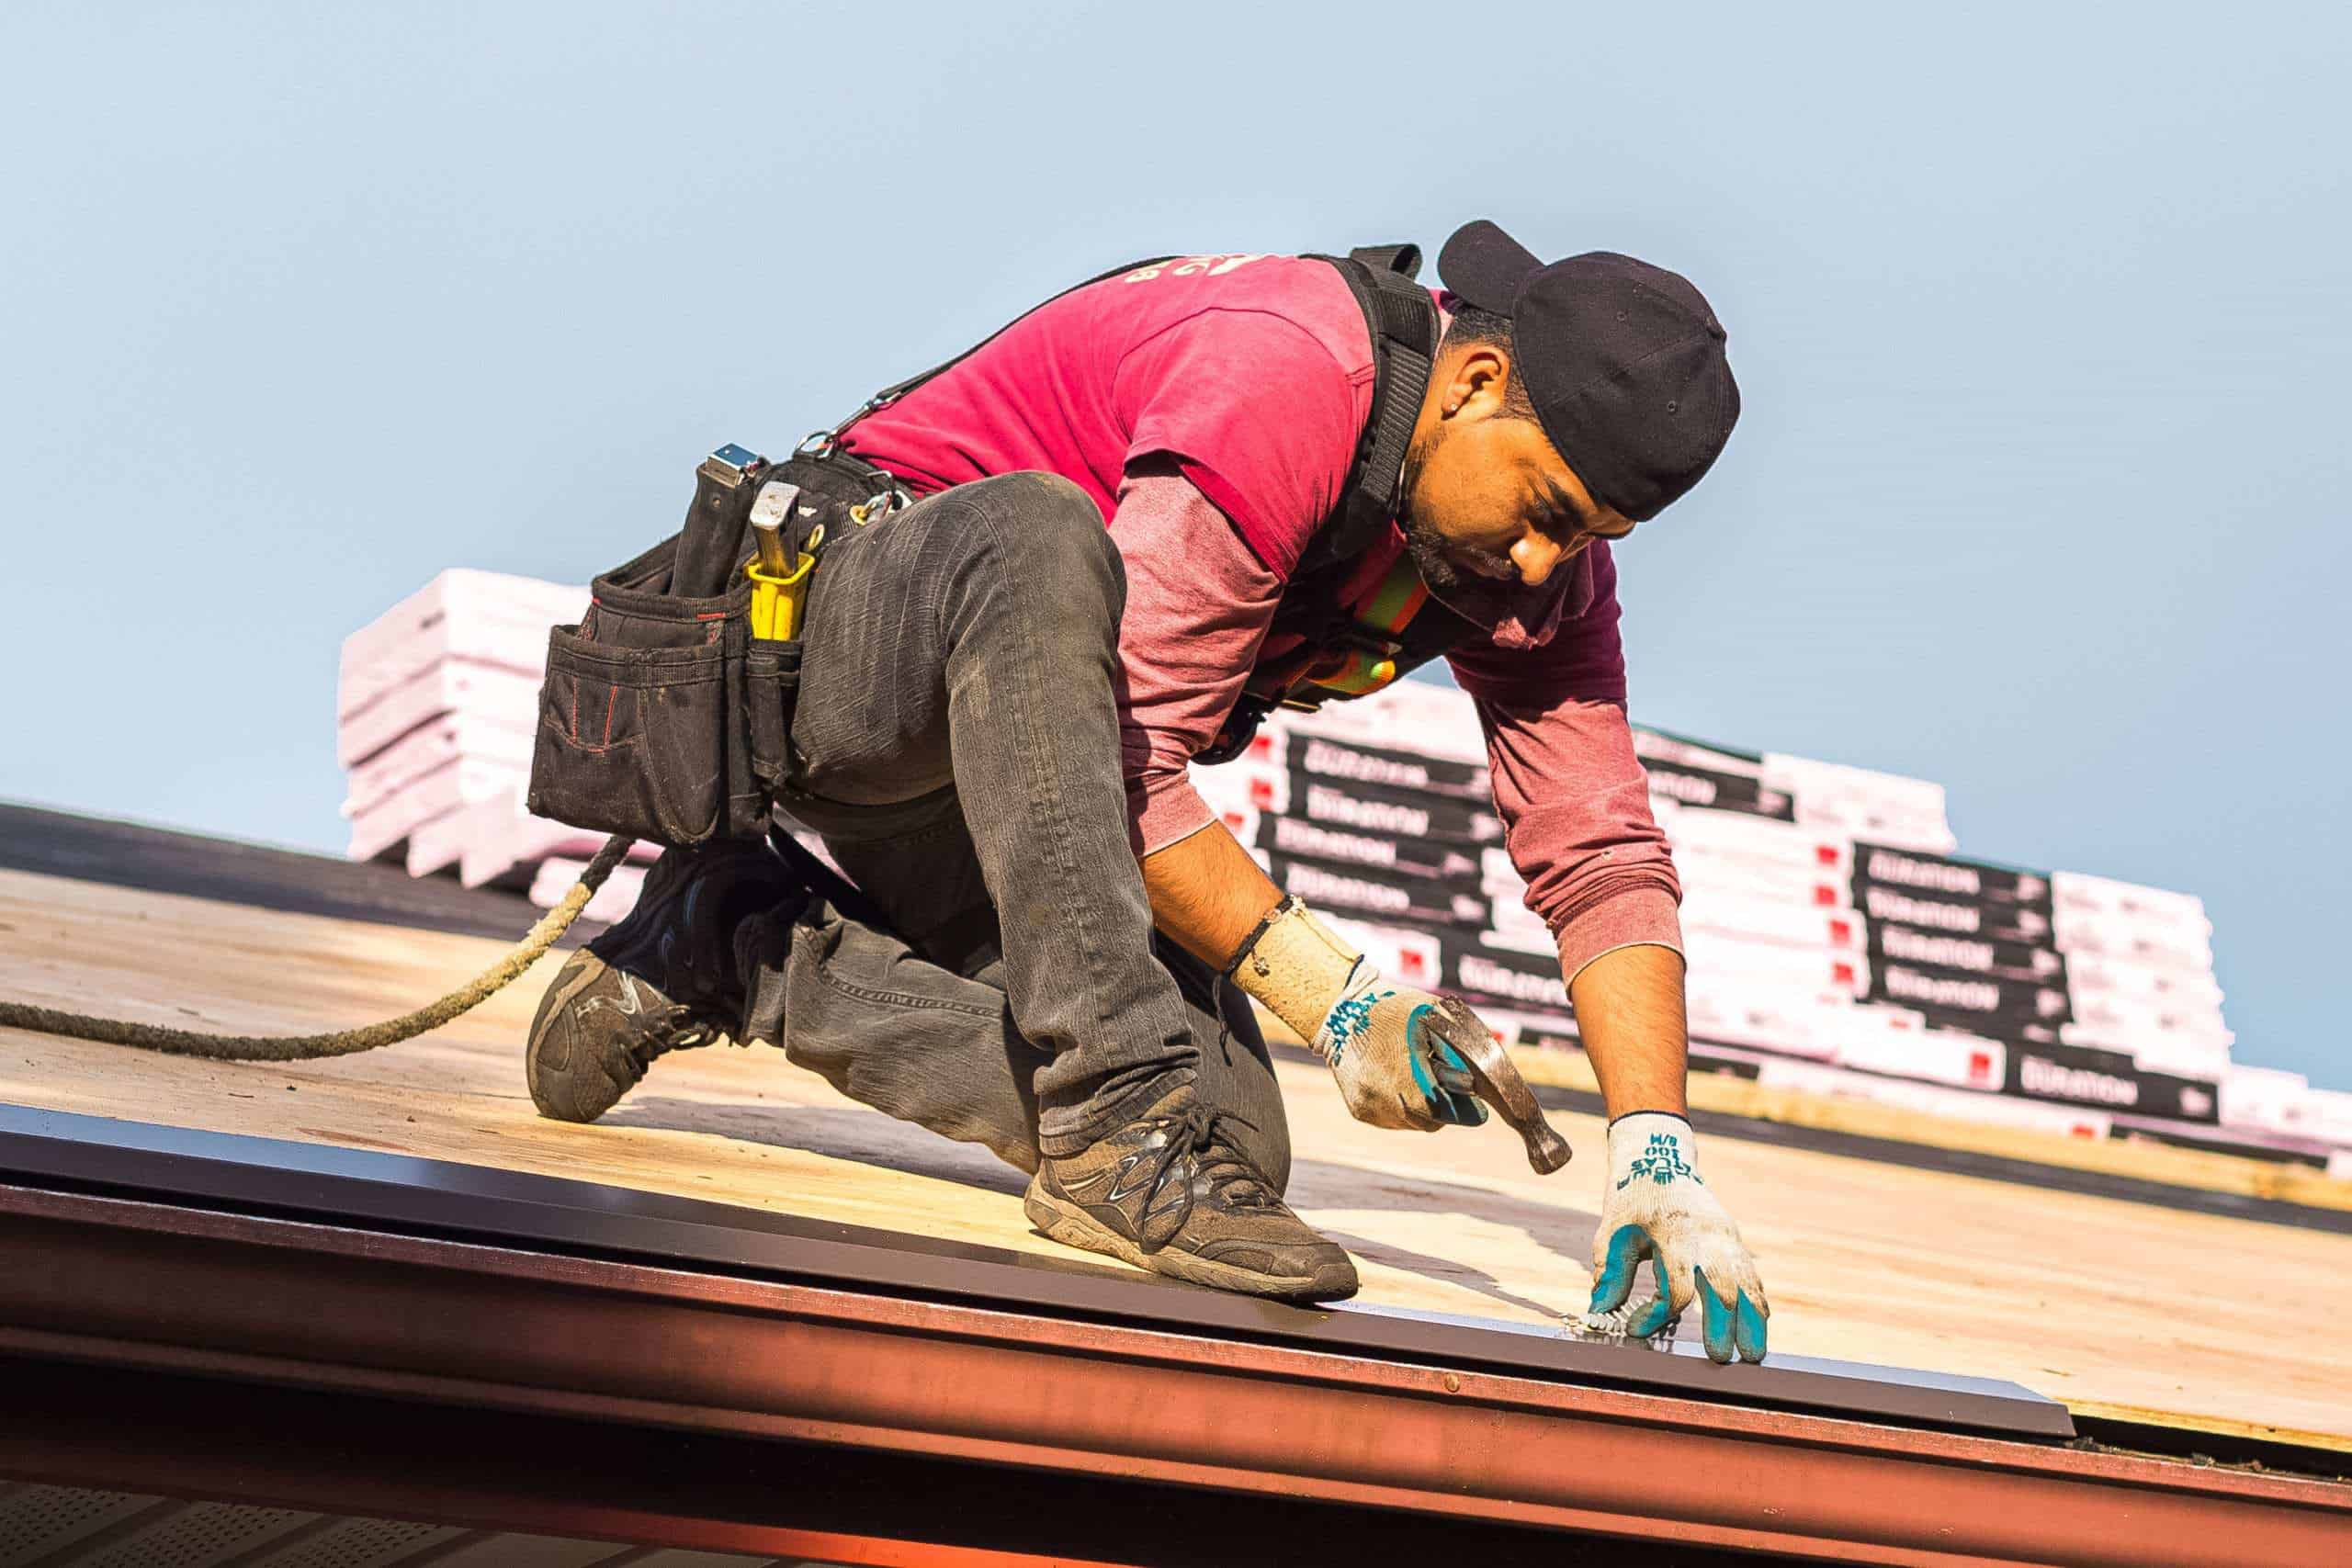 Man hammering a nail in place teathered by safety rope on top of a roof. Roofing materials in background